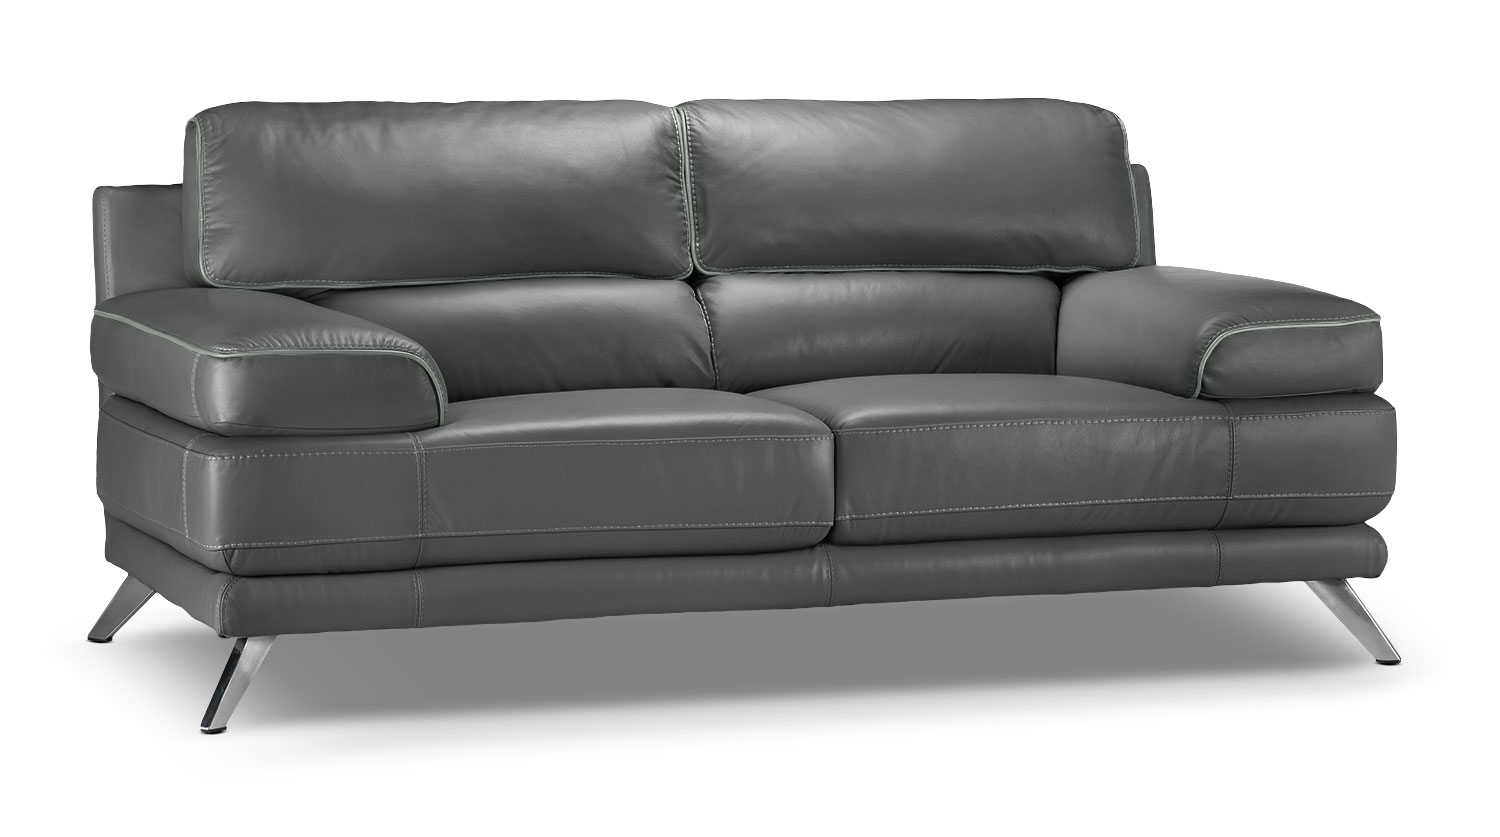 Sutton Loveseat - Charcoal Grey